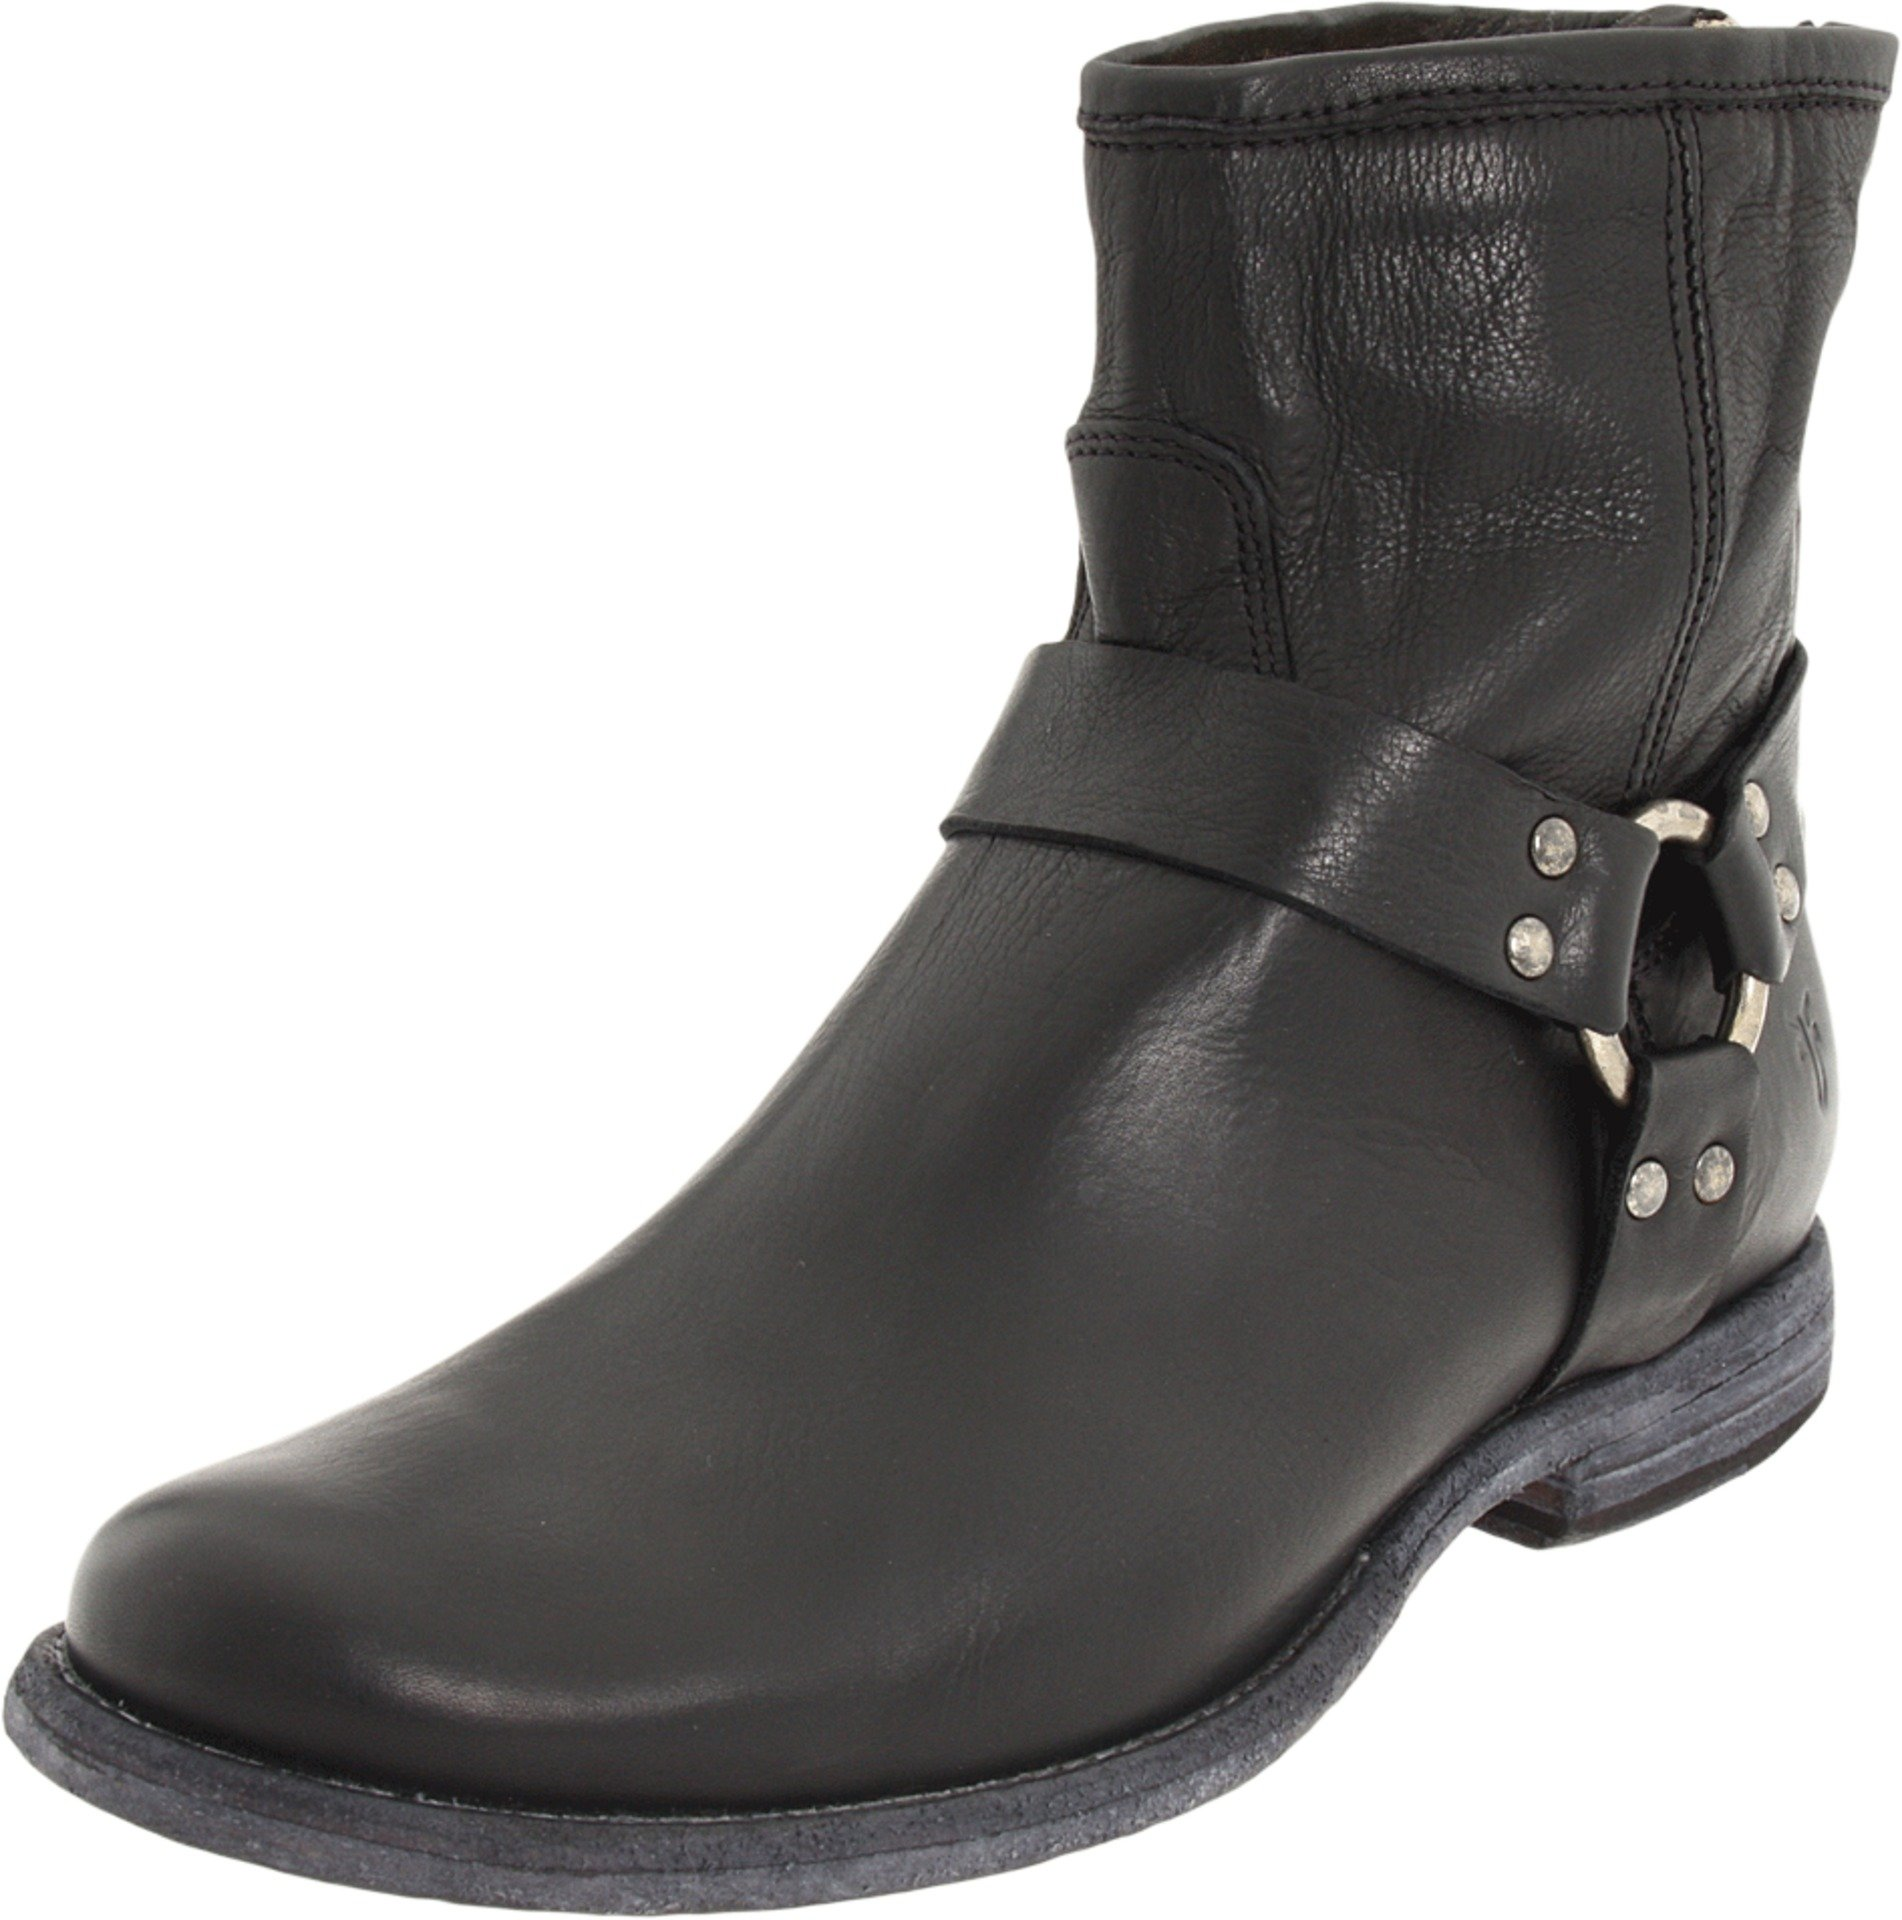 FRYE Women's Phillip Harness Ankle Boot, Black Soft Vintage Leather, 6 M US